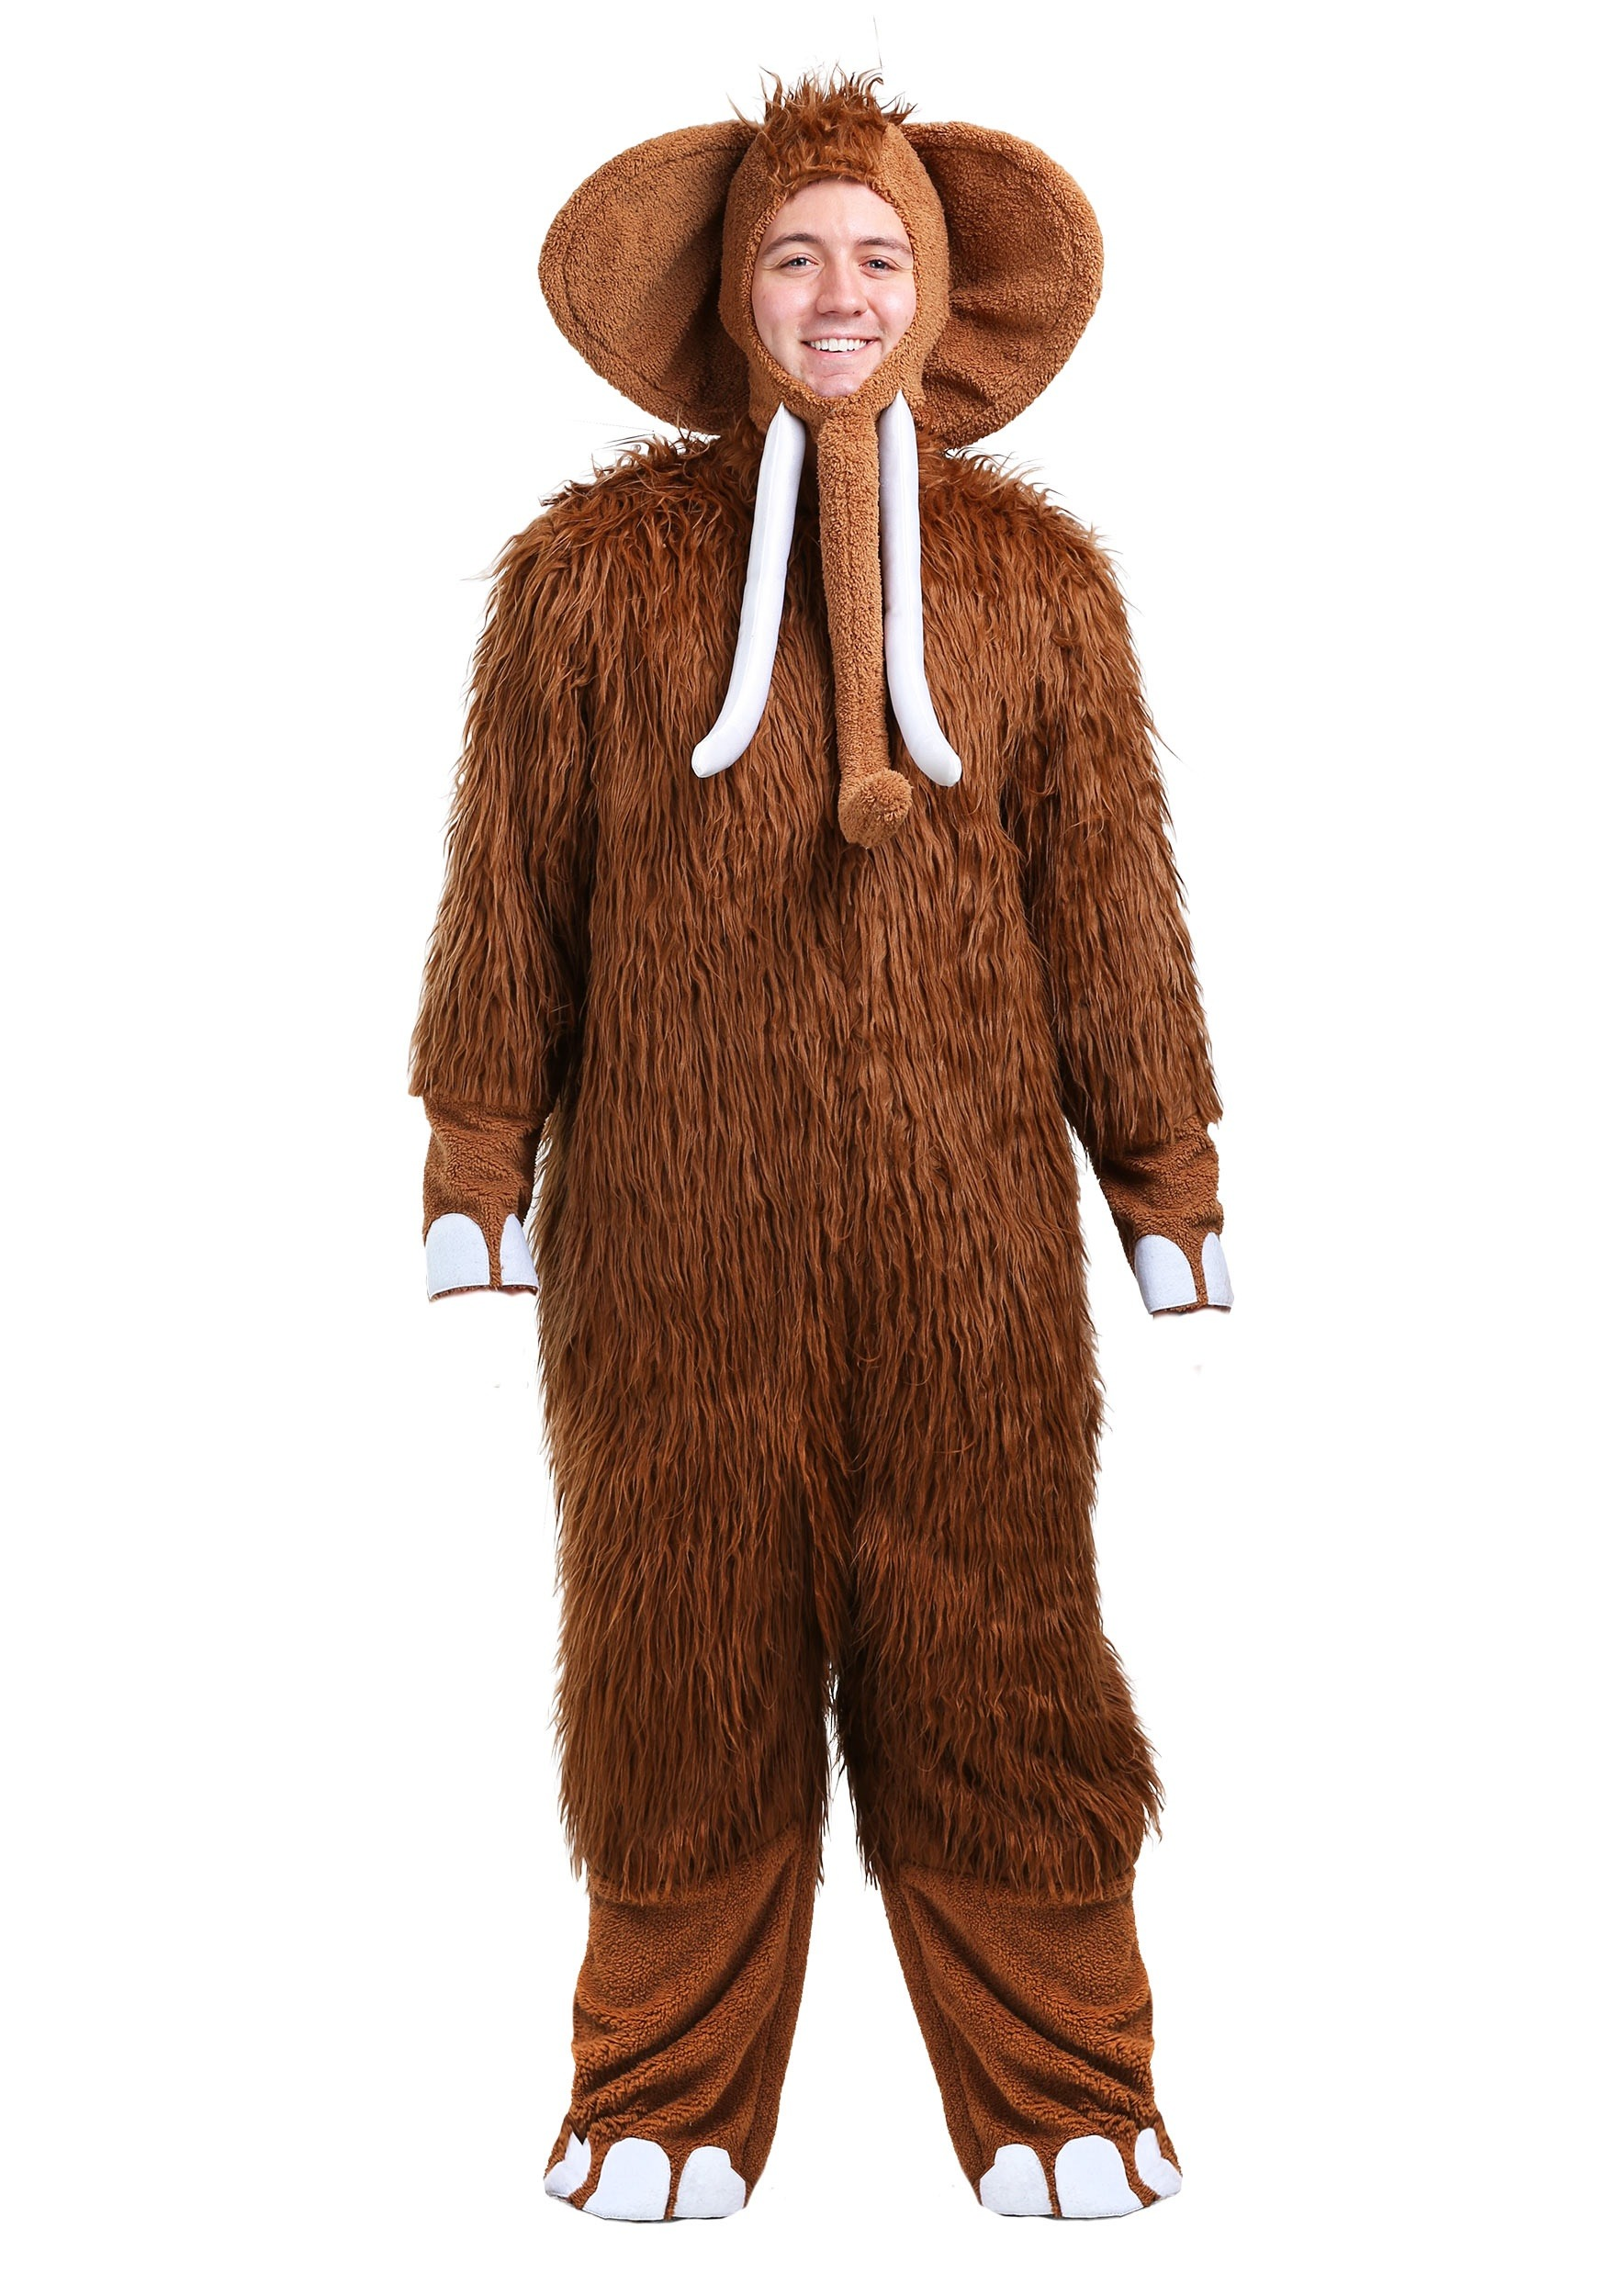 Woolly Mammoth Costume for Men a9c333af55f